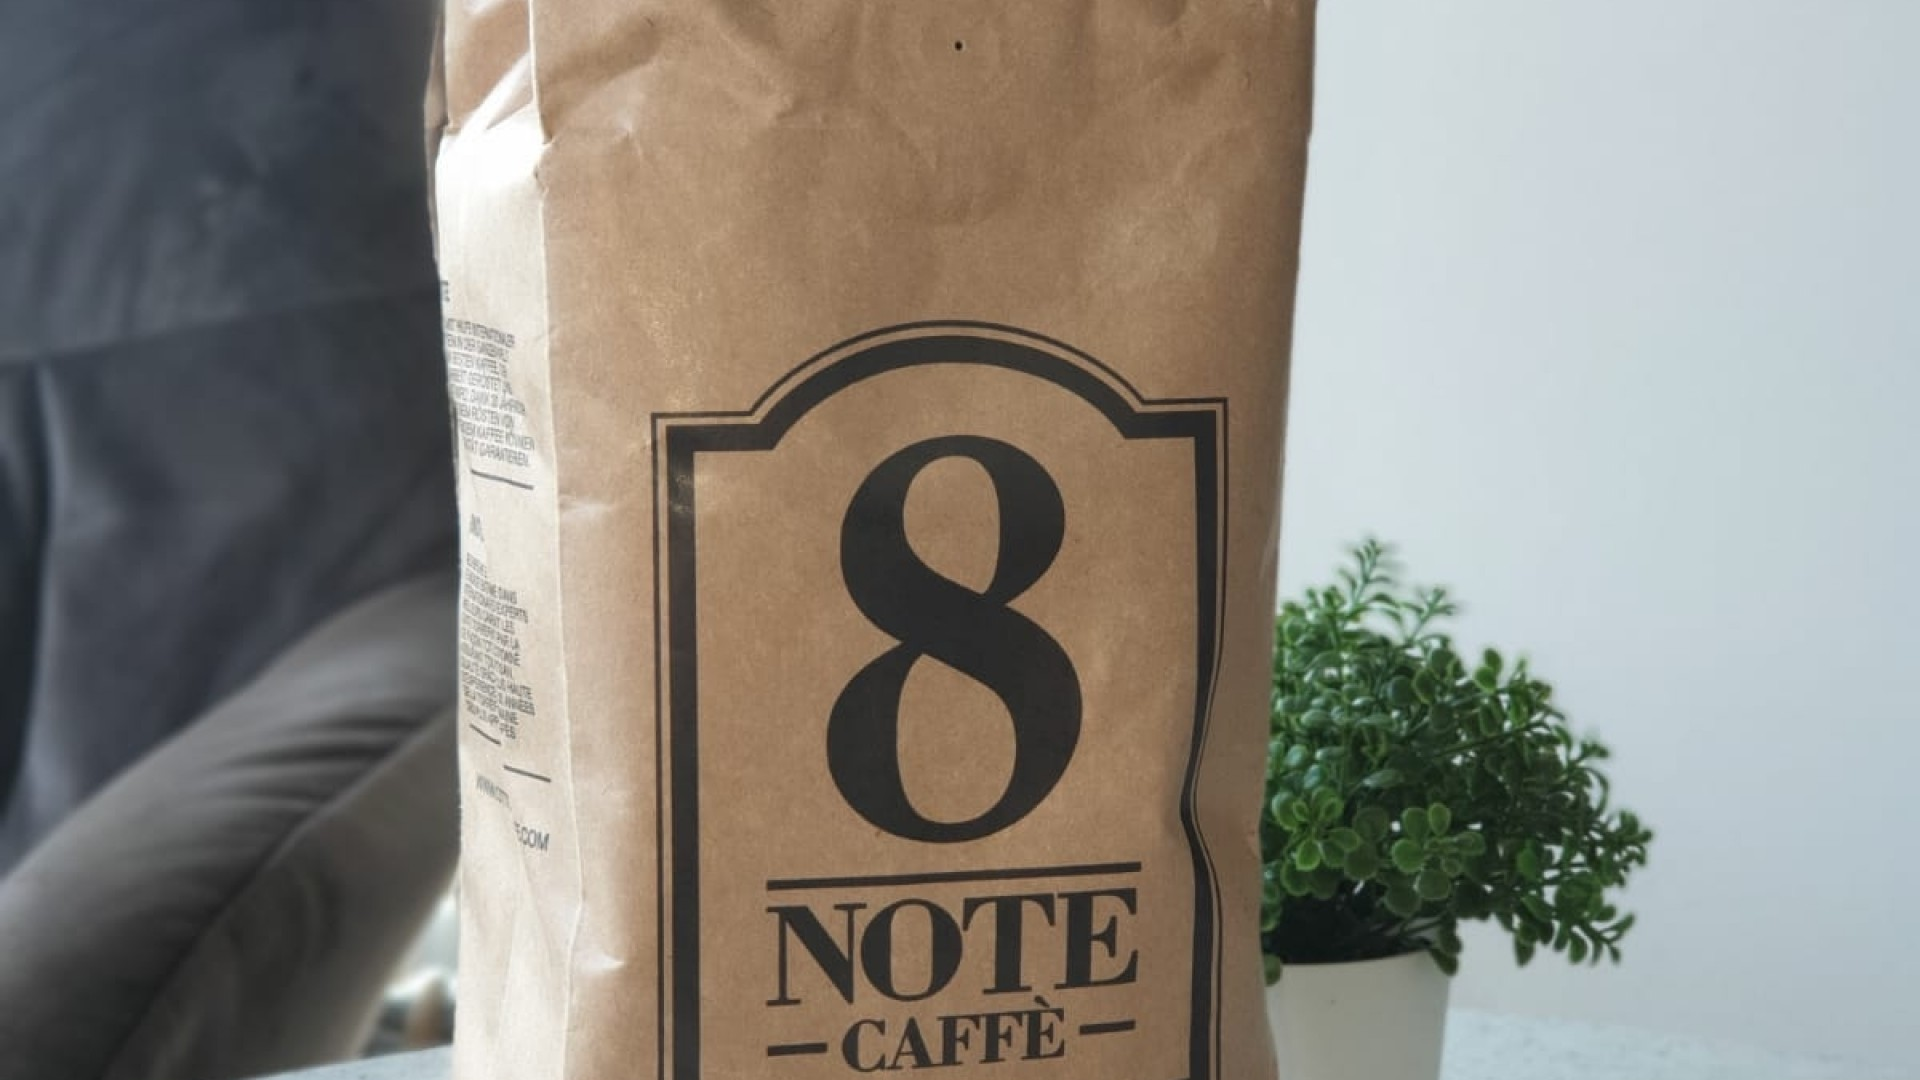 8 Note